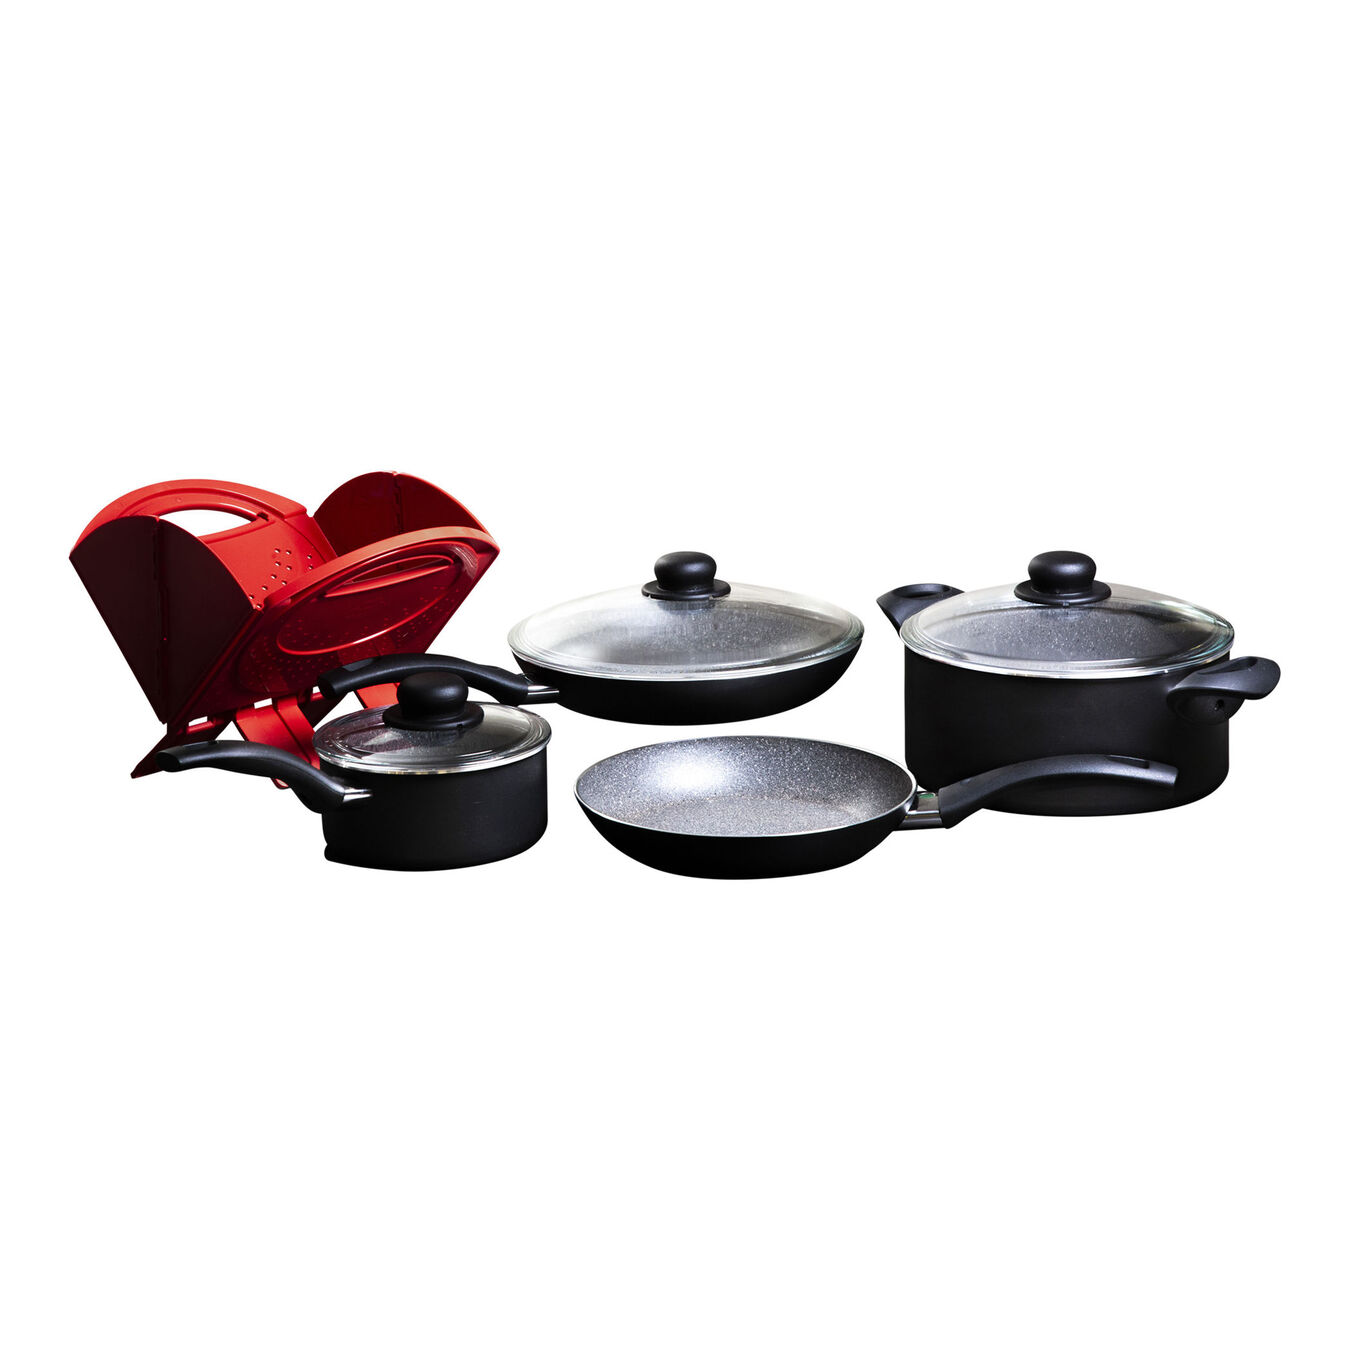 8-pc Cookware Set,,large 1